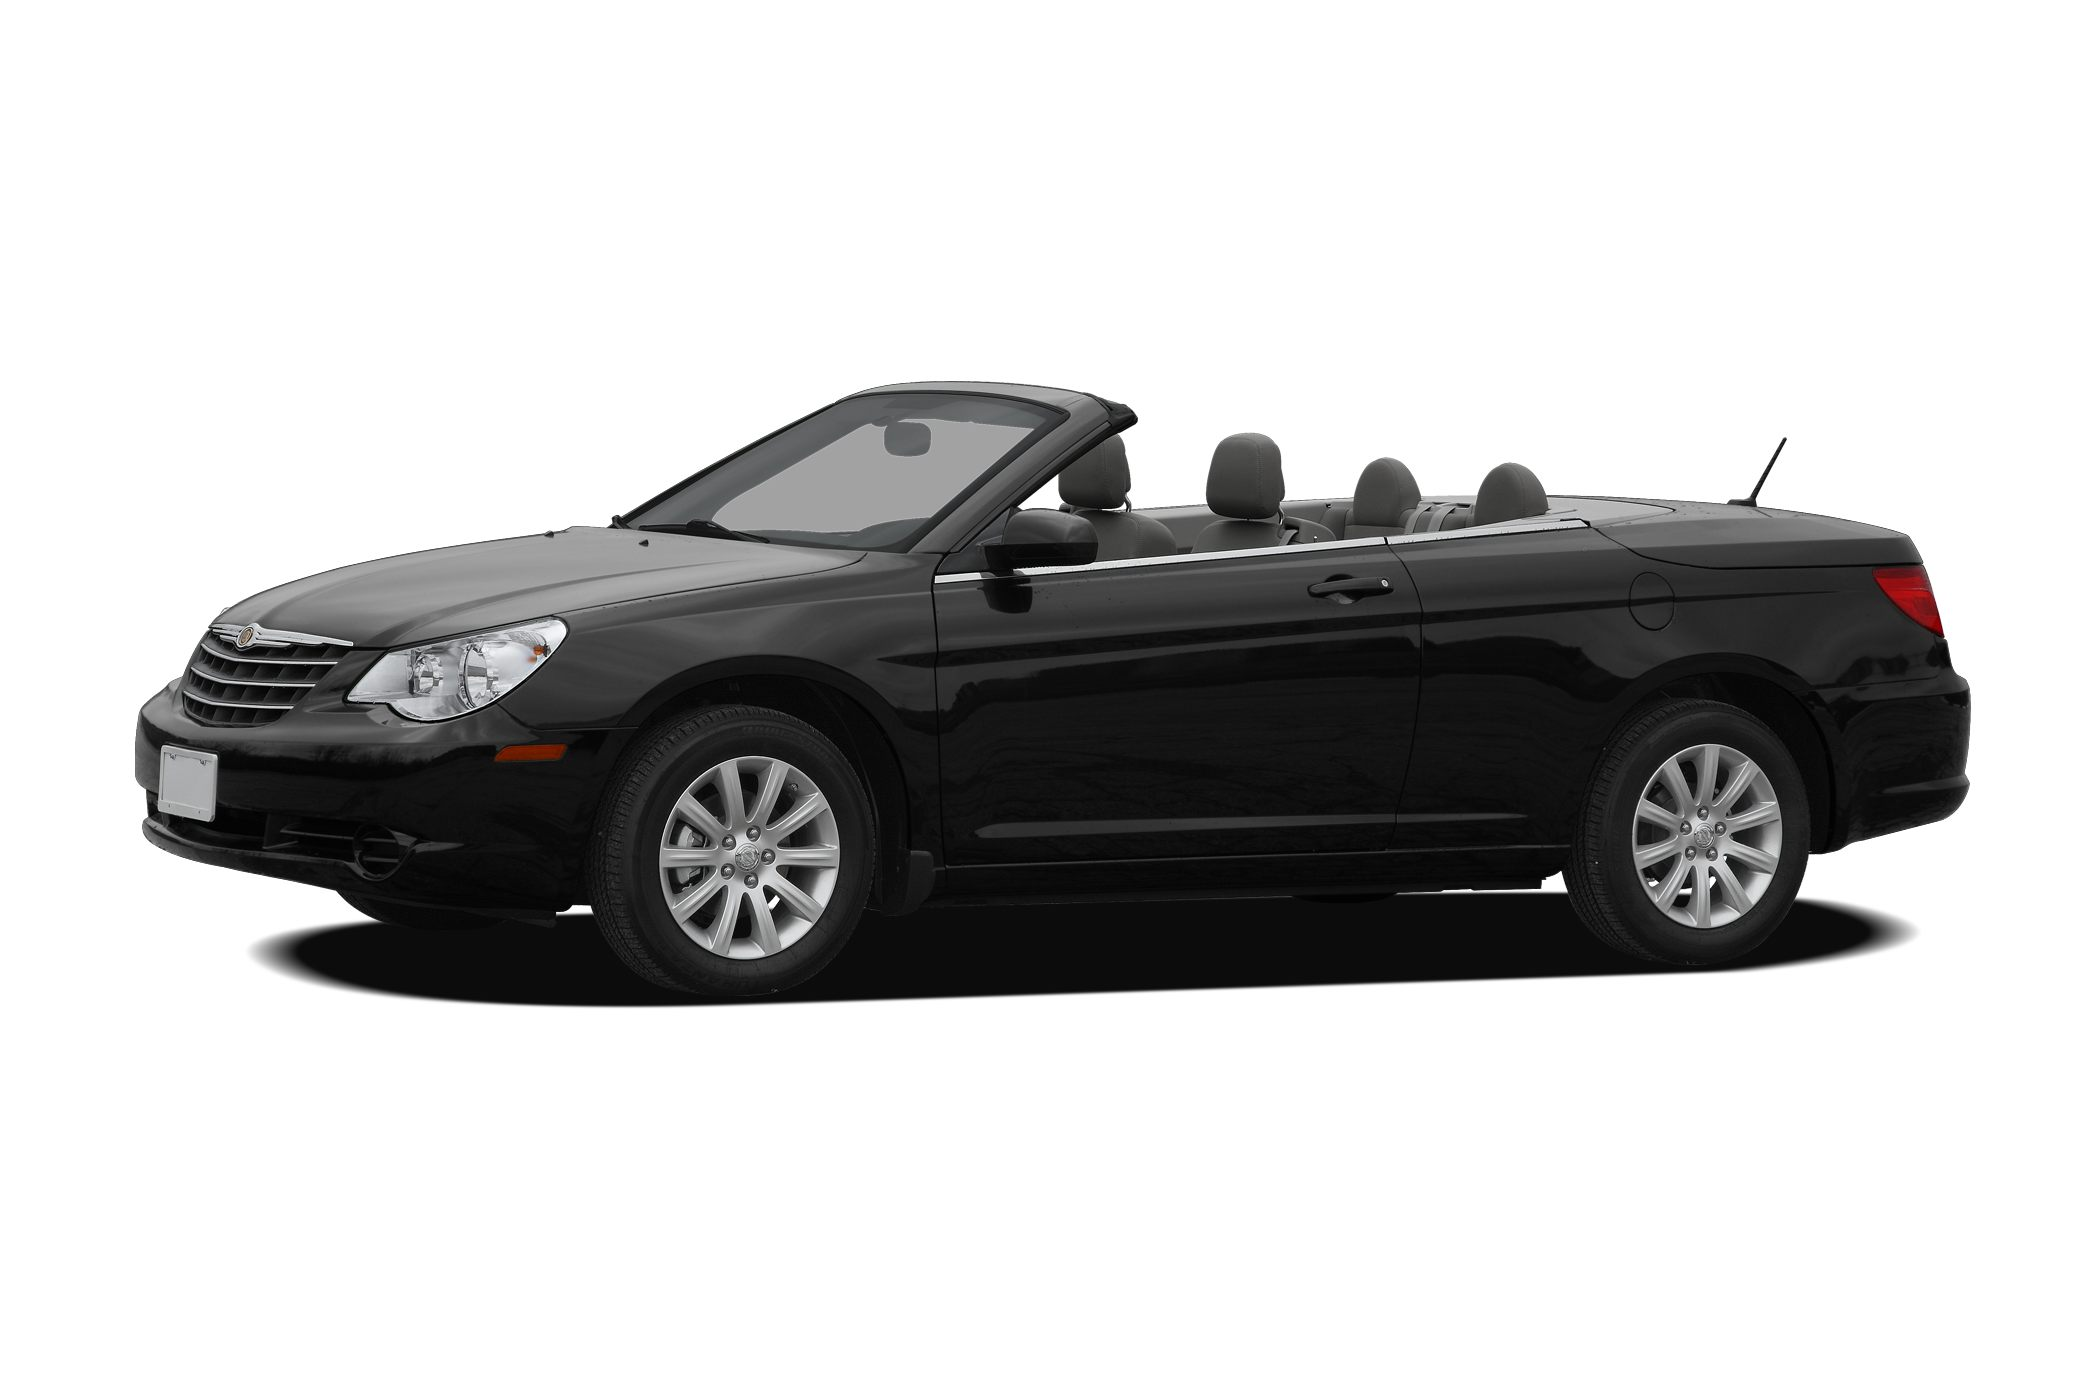 2008 Chrysler Sebring LX Sedan for sale in Harrisburg for $0 with 80,464 miles